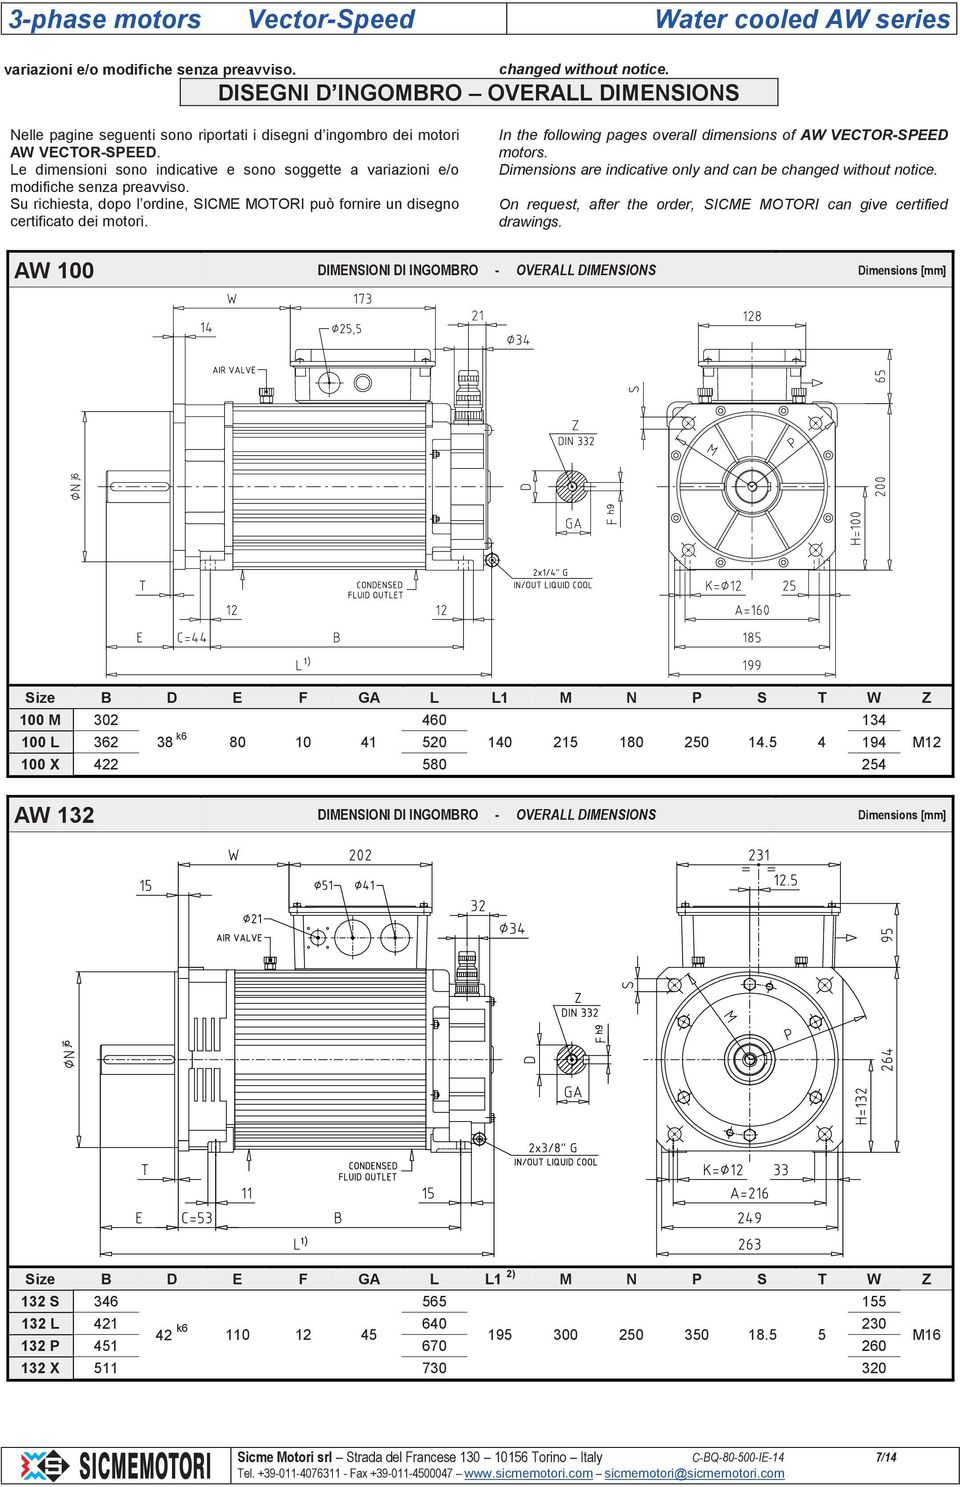 In the following pages overall dimensions of AW VECTOR-SPEED motors. Dimensions are indicative only and can be changed without notice.